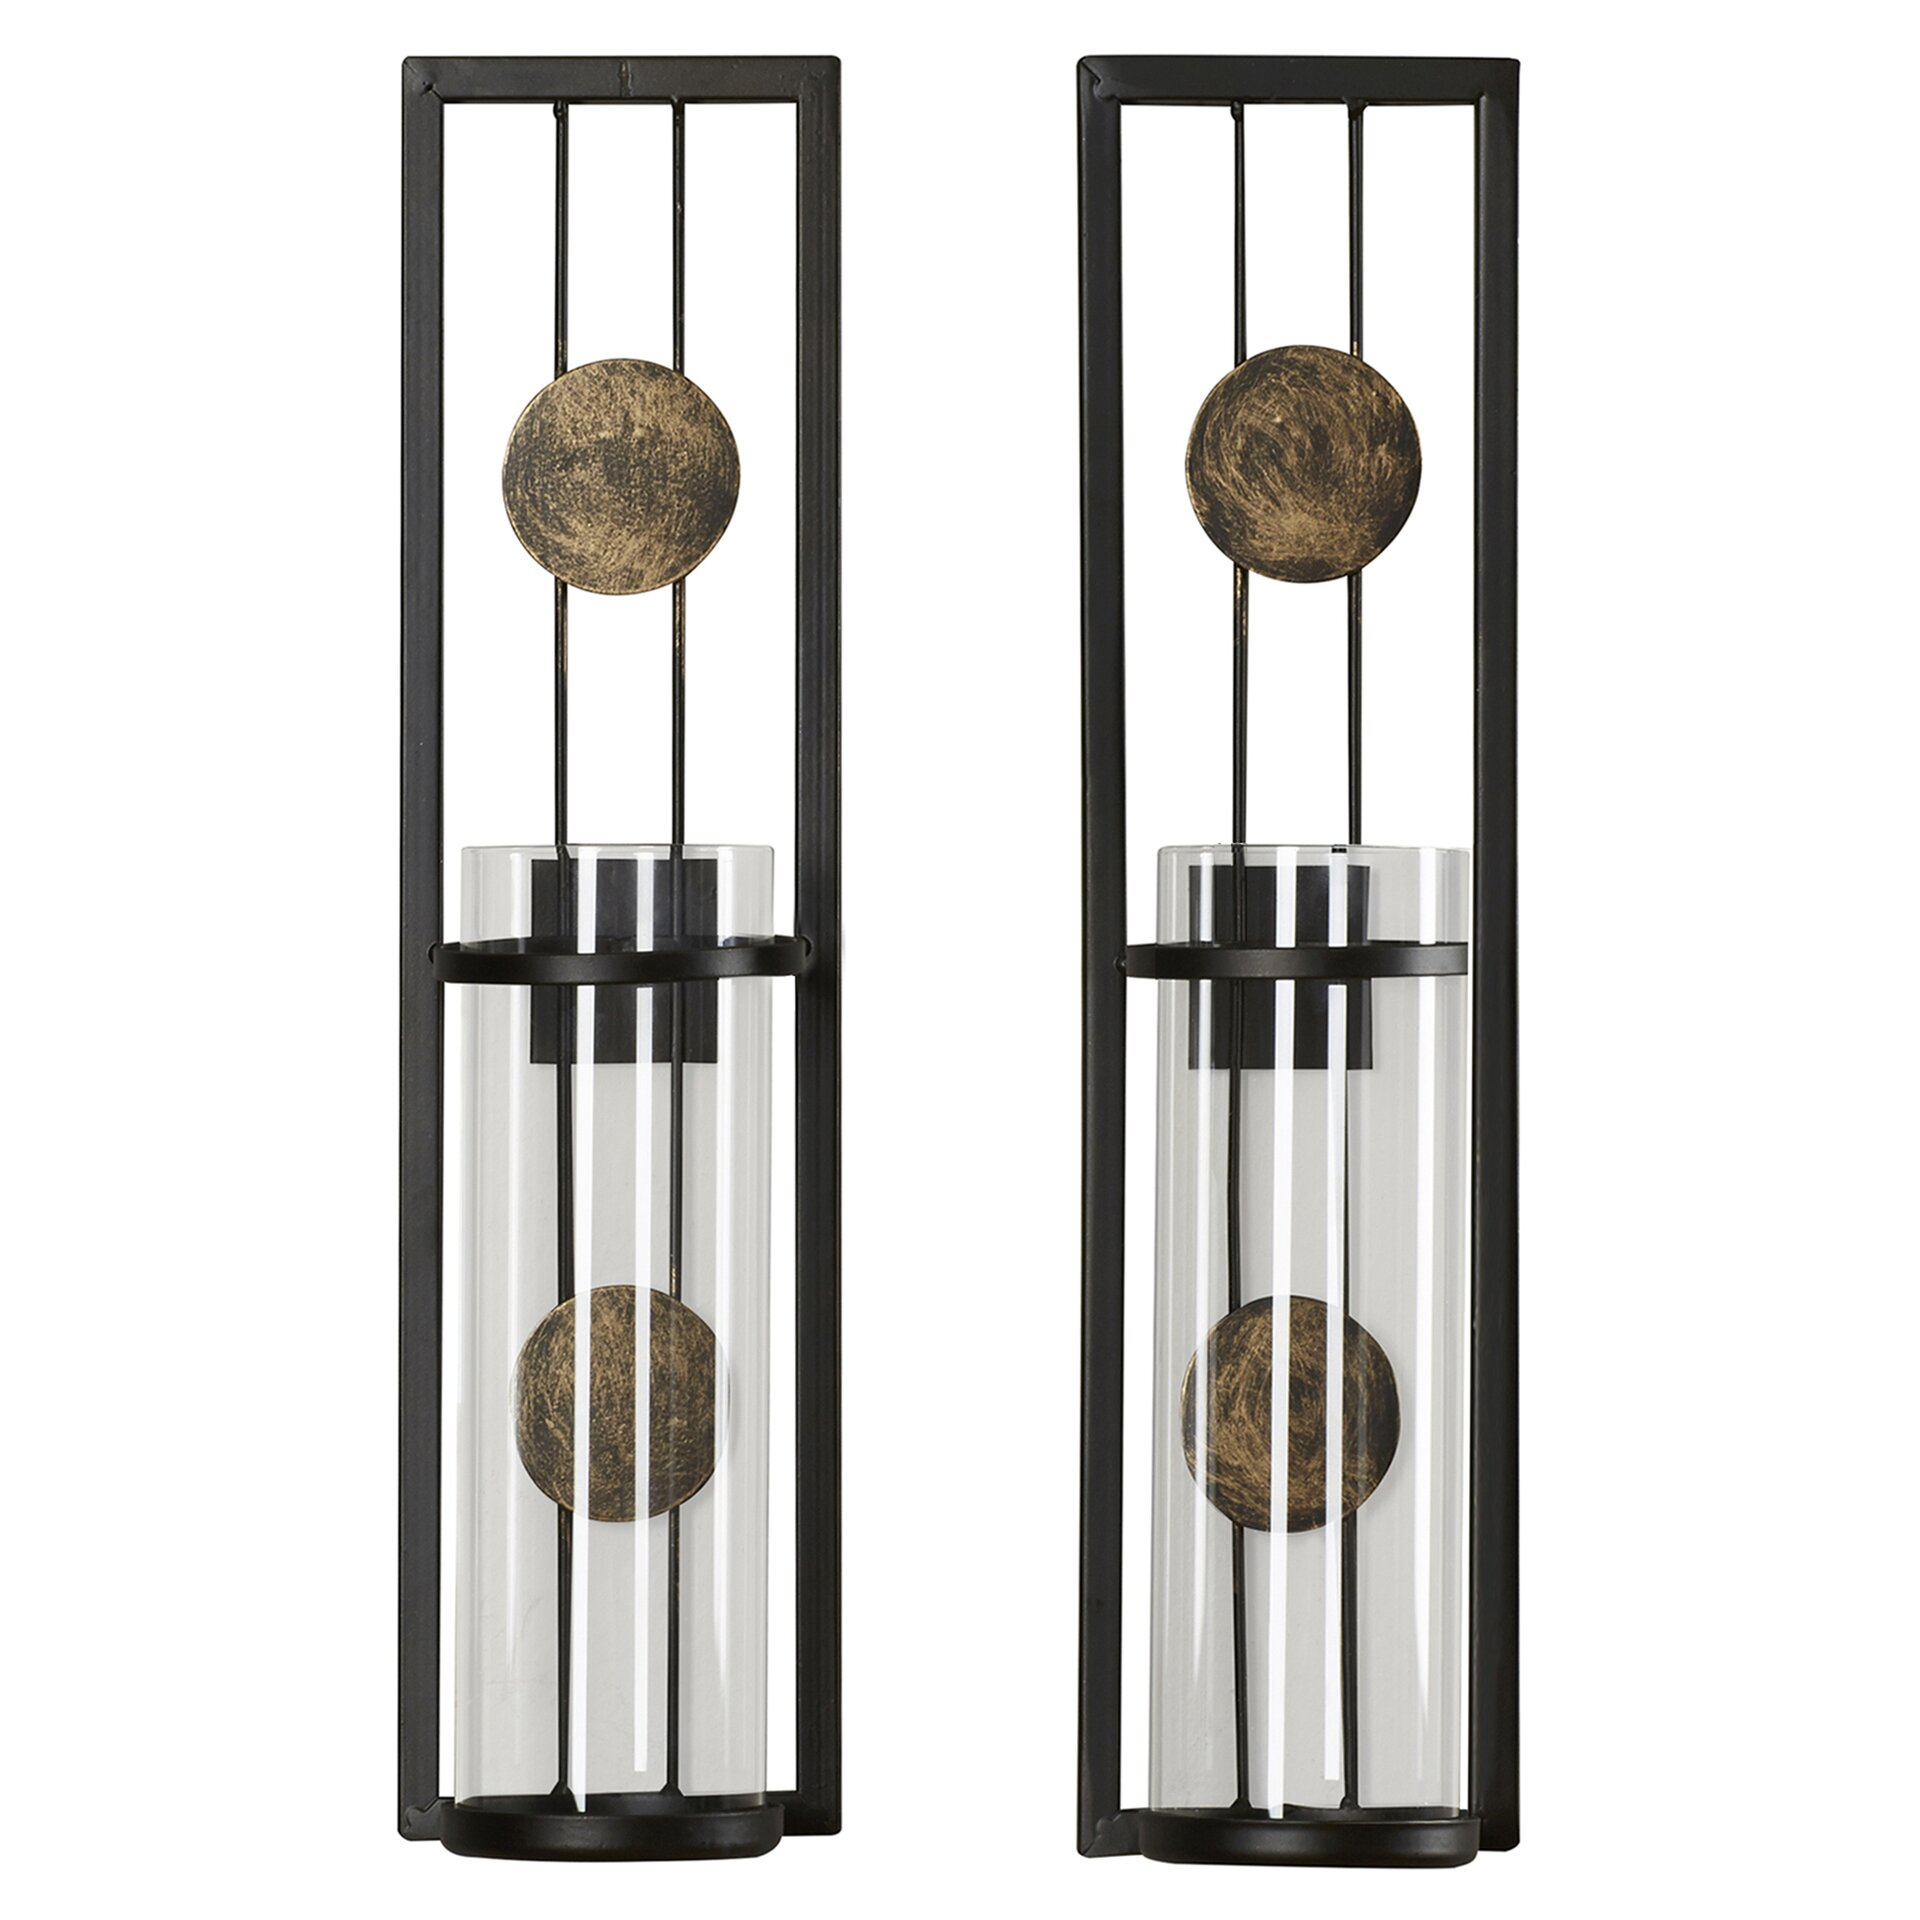 Brayden Studio Contemporary Wall Sconce Candle Holder & Reviews Wayfair